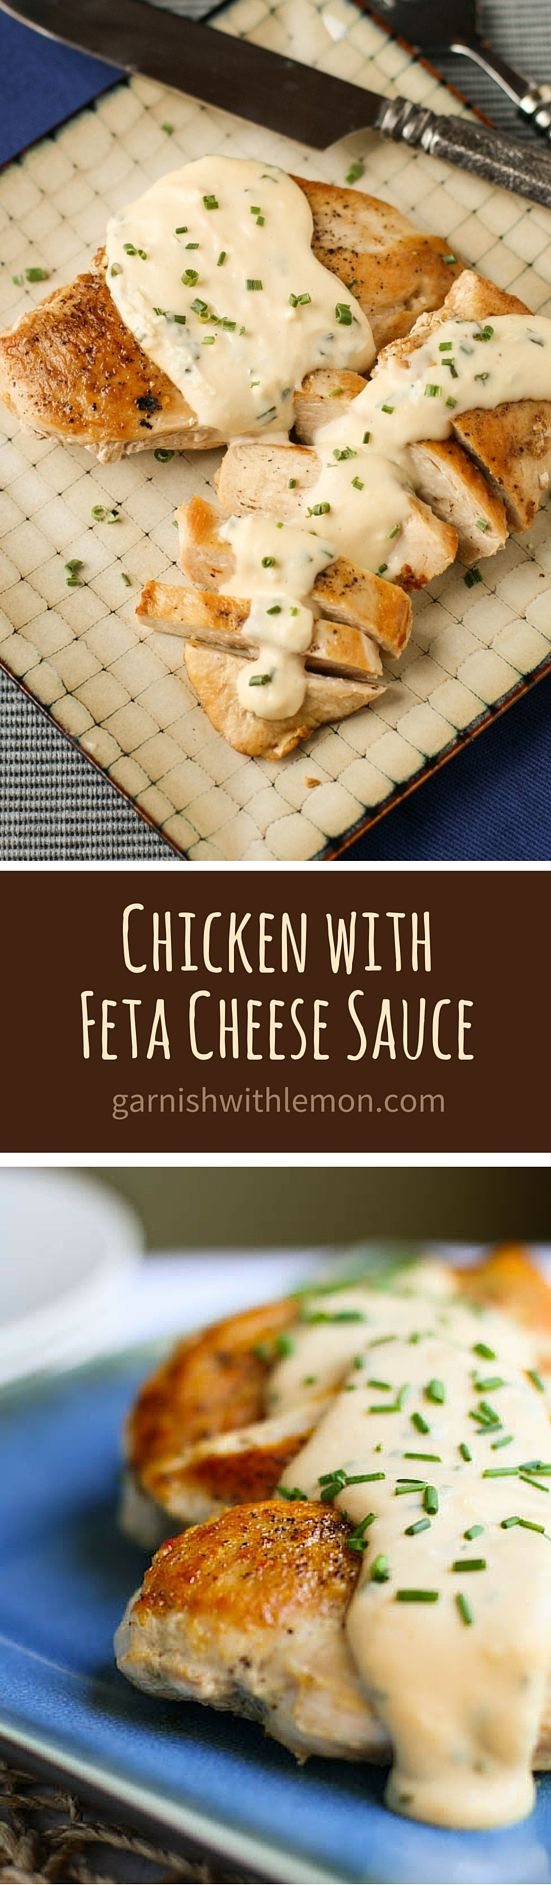 Don't miss our family's favorite easy dinner recipe - Chicken with Feta Cheese Sauce!